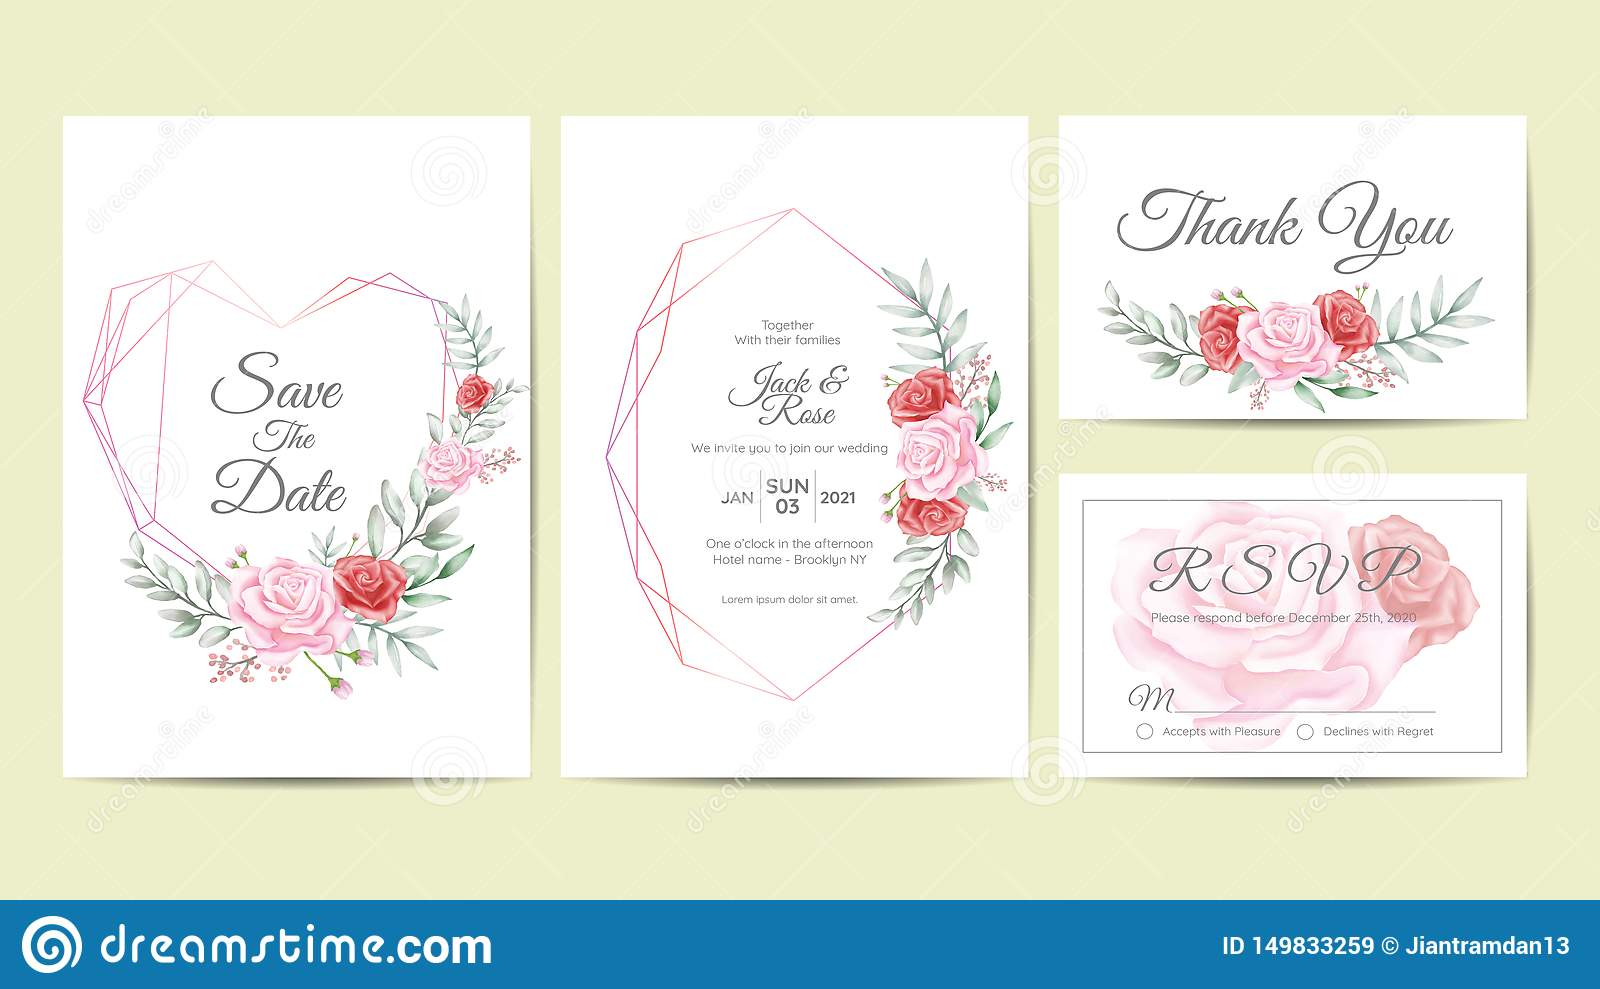 Watercolor Floral Frame Wedding Invitation Cards Template. Hand Drawing Flower and Branches Save the Date, Greeting, Thank You,